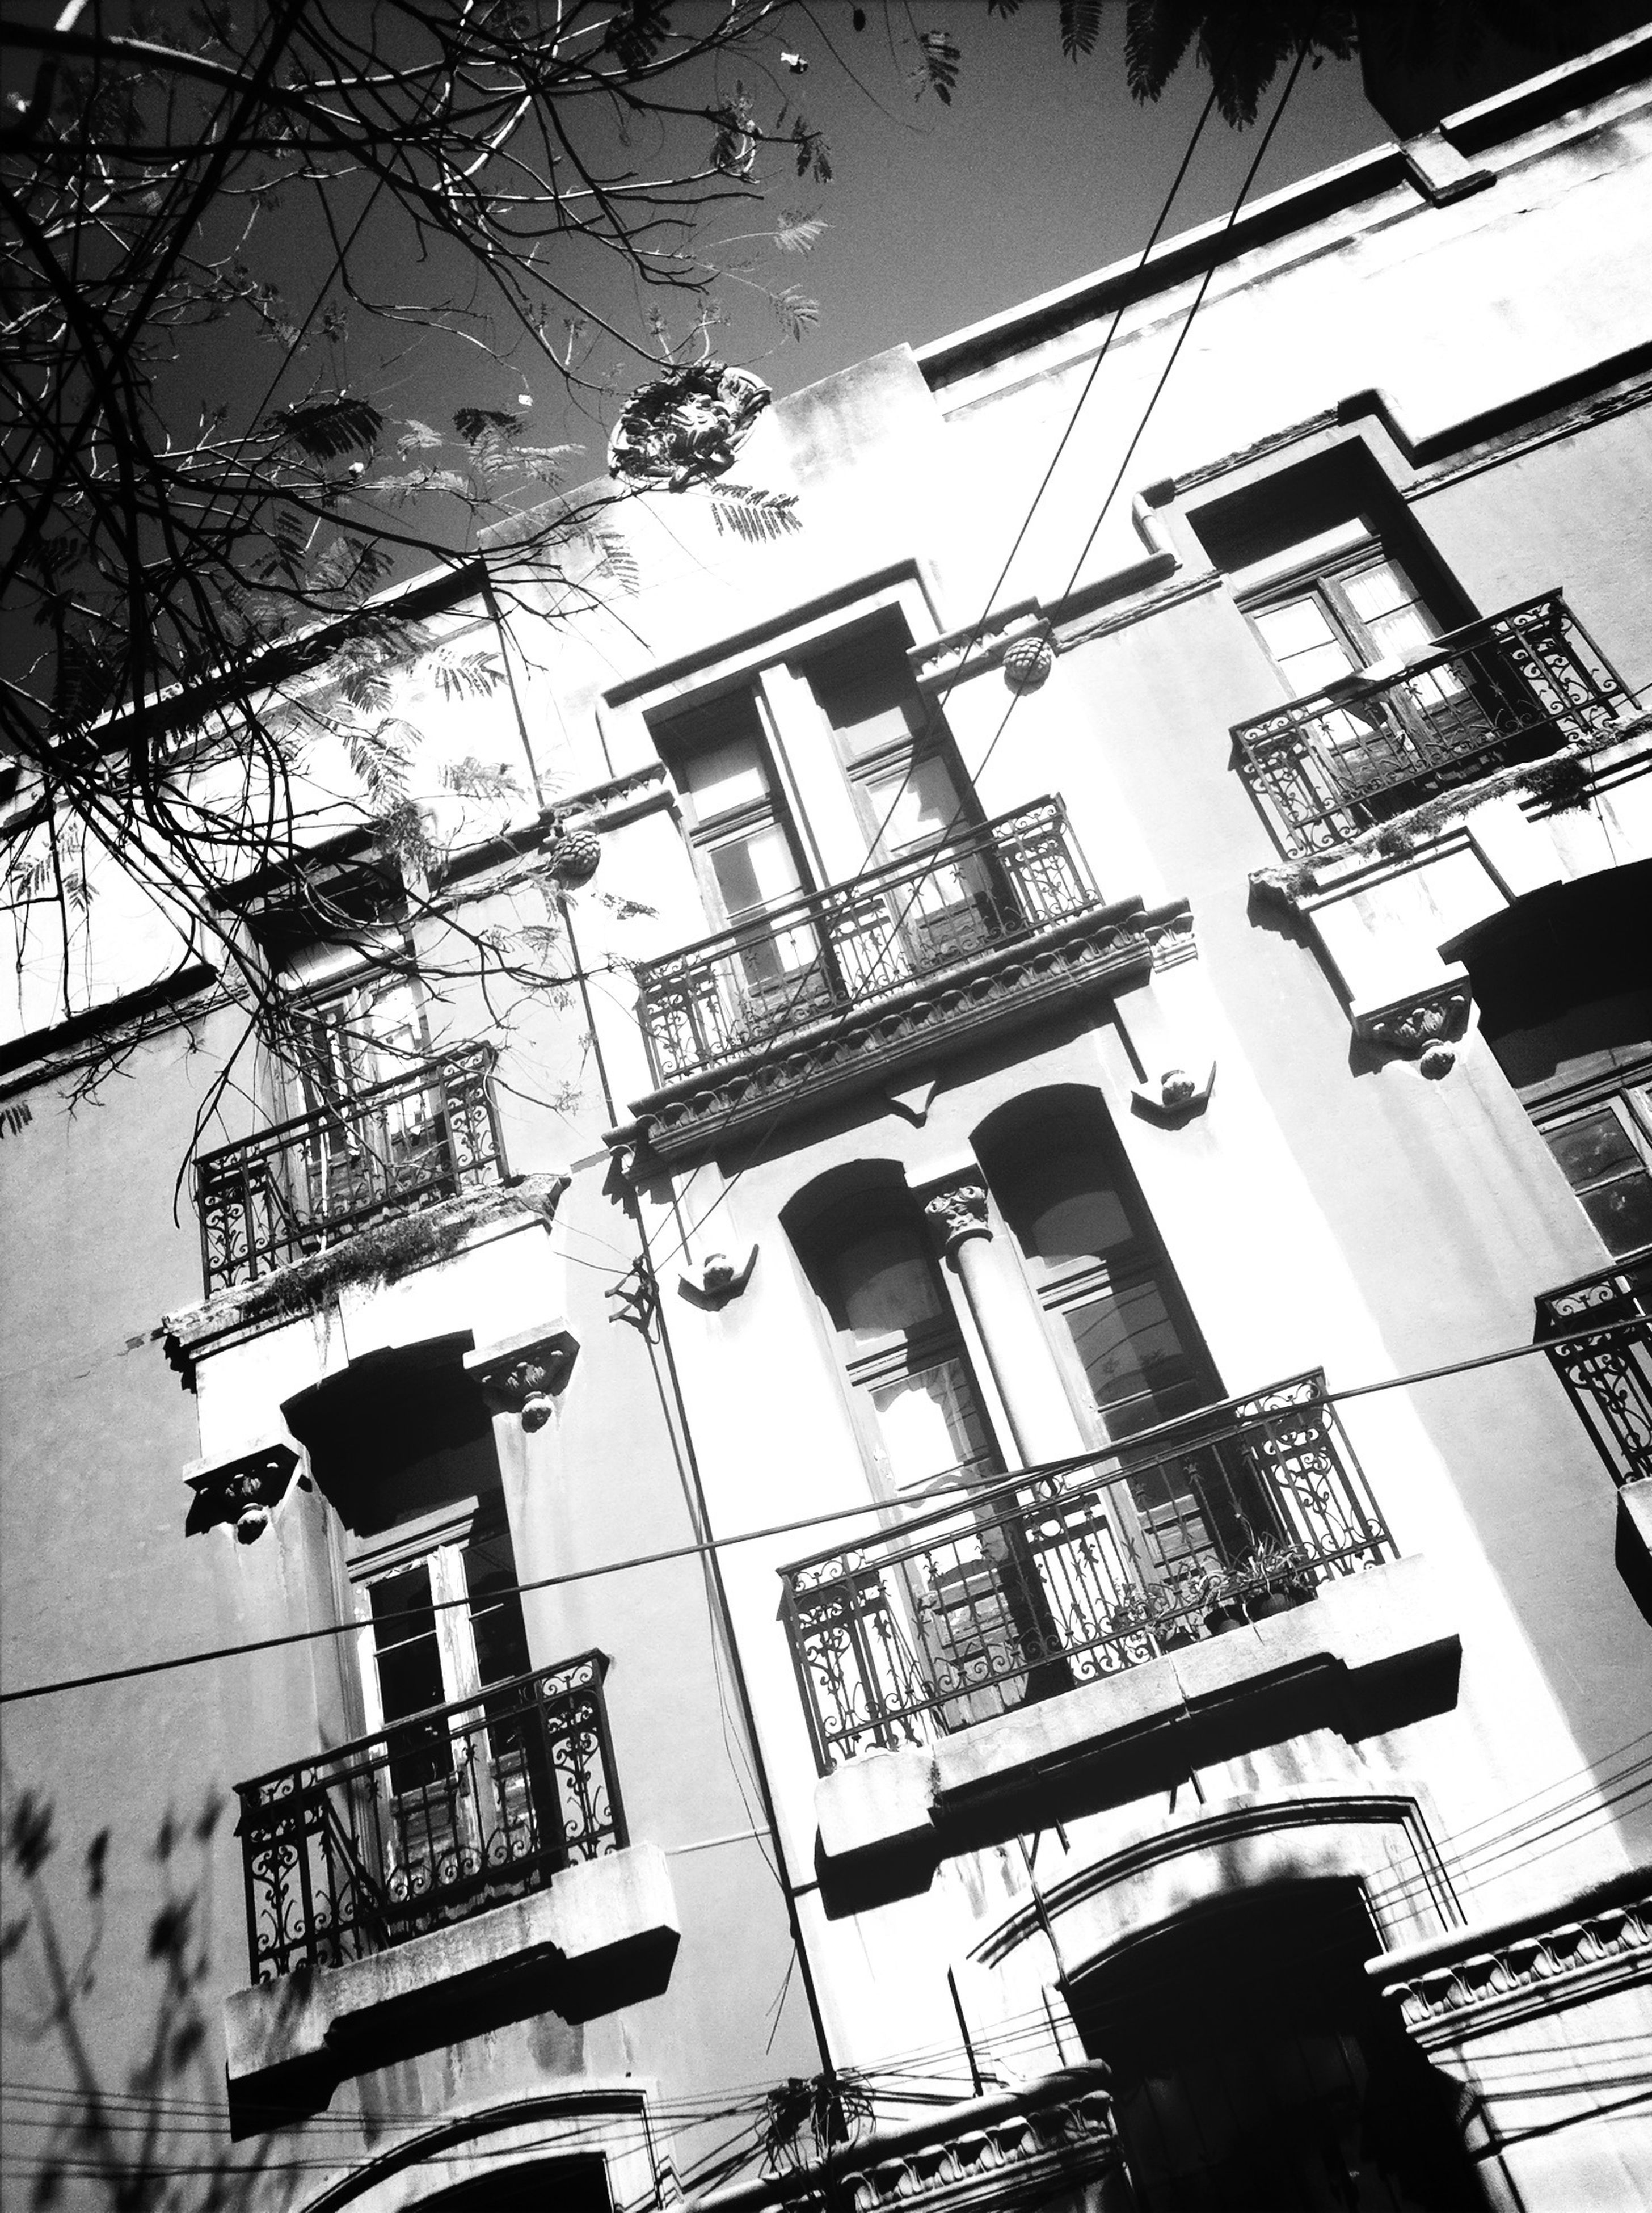 building exterior, architecture, built structure, low angle view, residential building, building, window, residential structure, tree, house, city, sky, day, outdoors, branch, balcony, no people, street light, apartment, sunlight